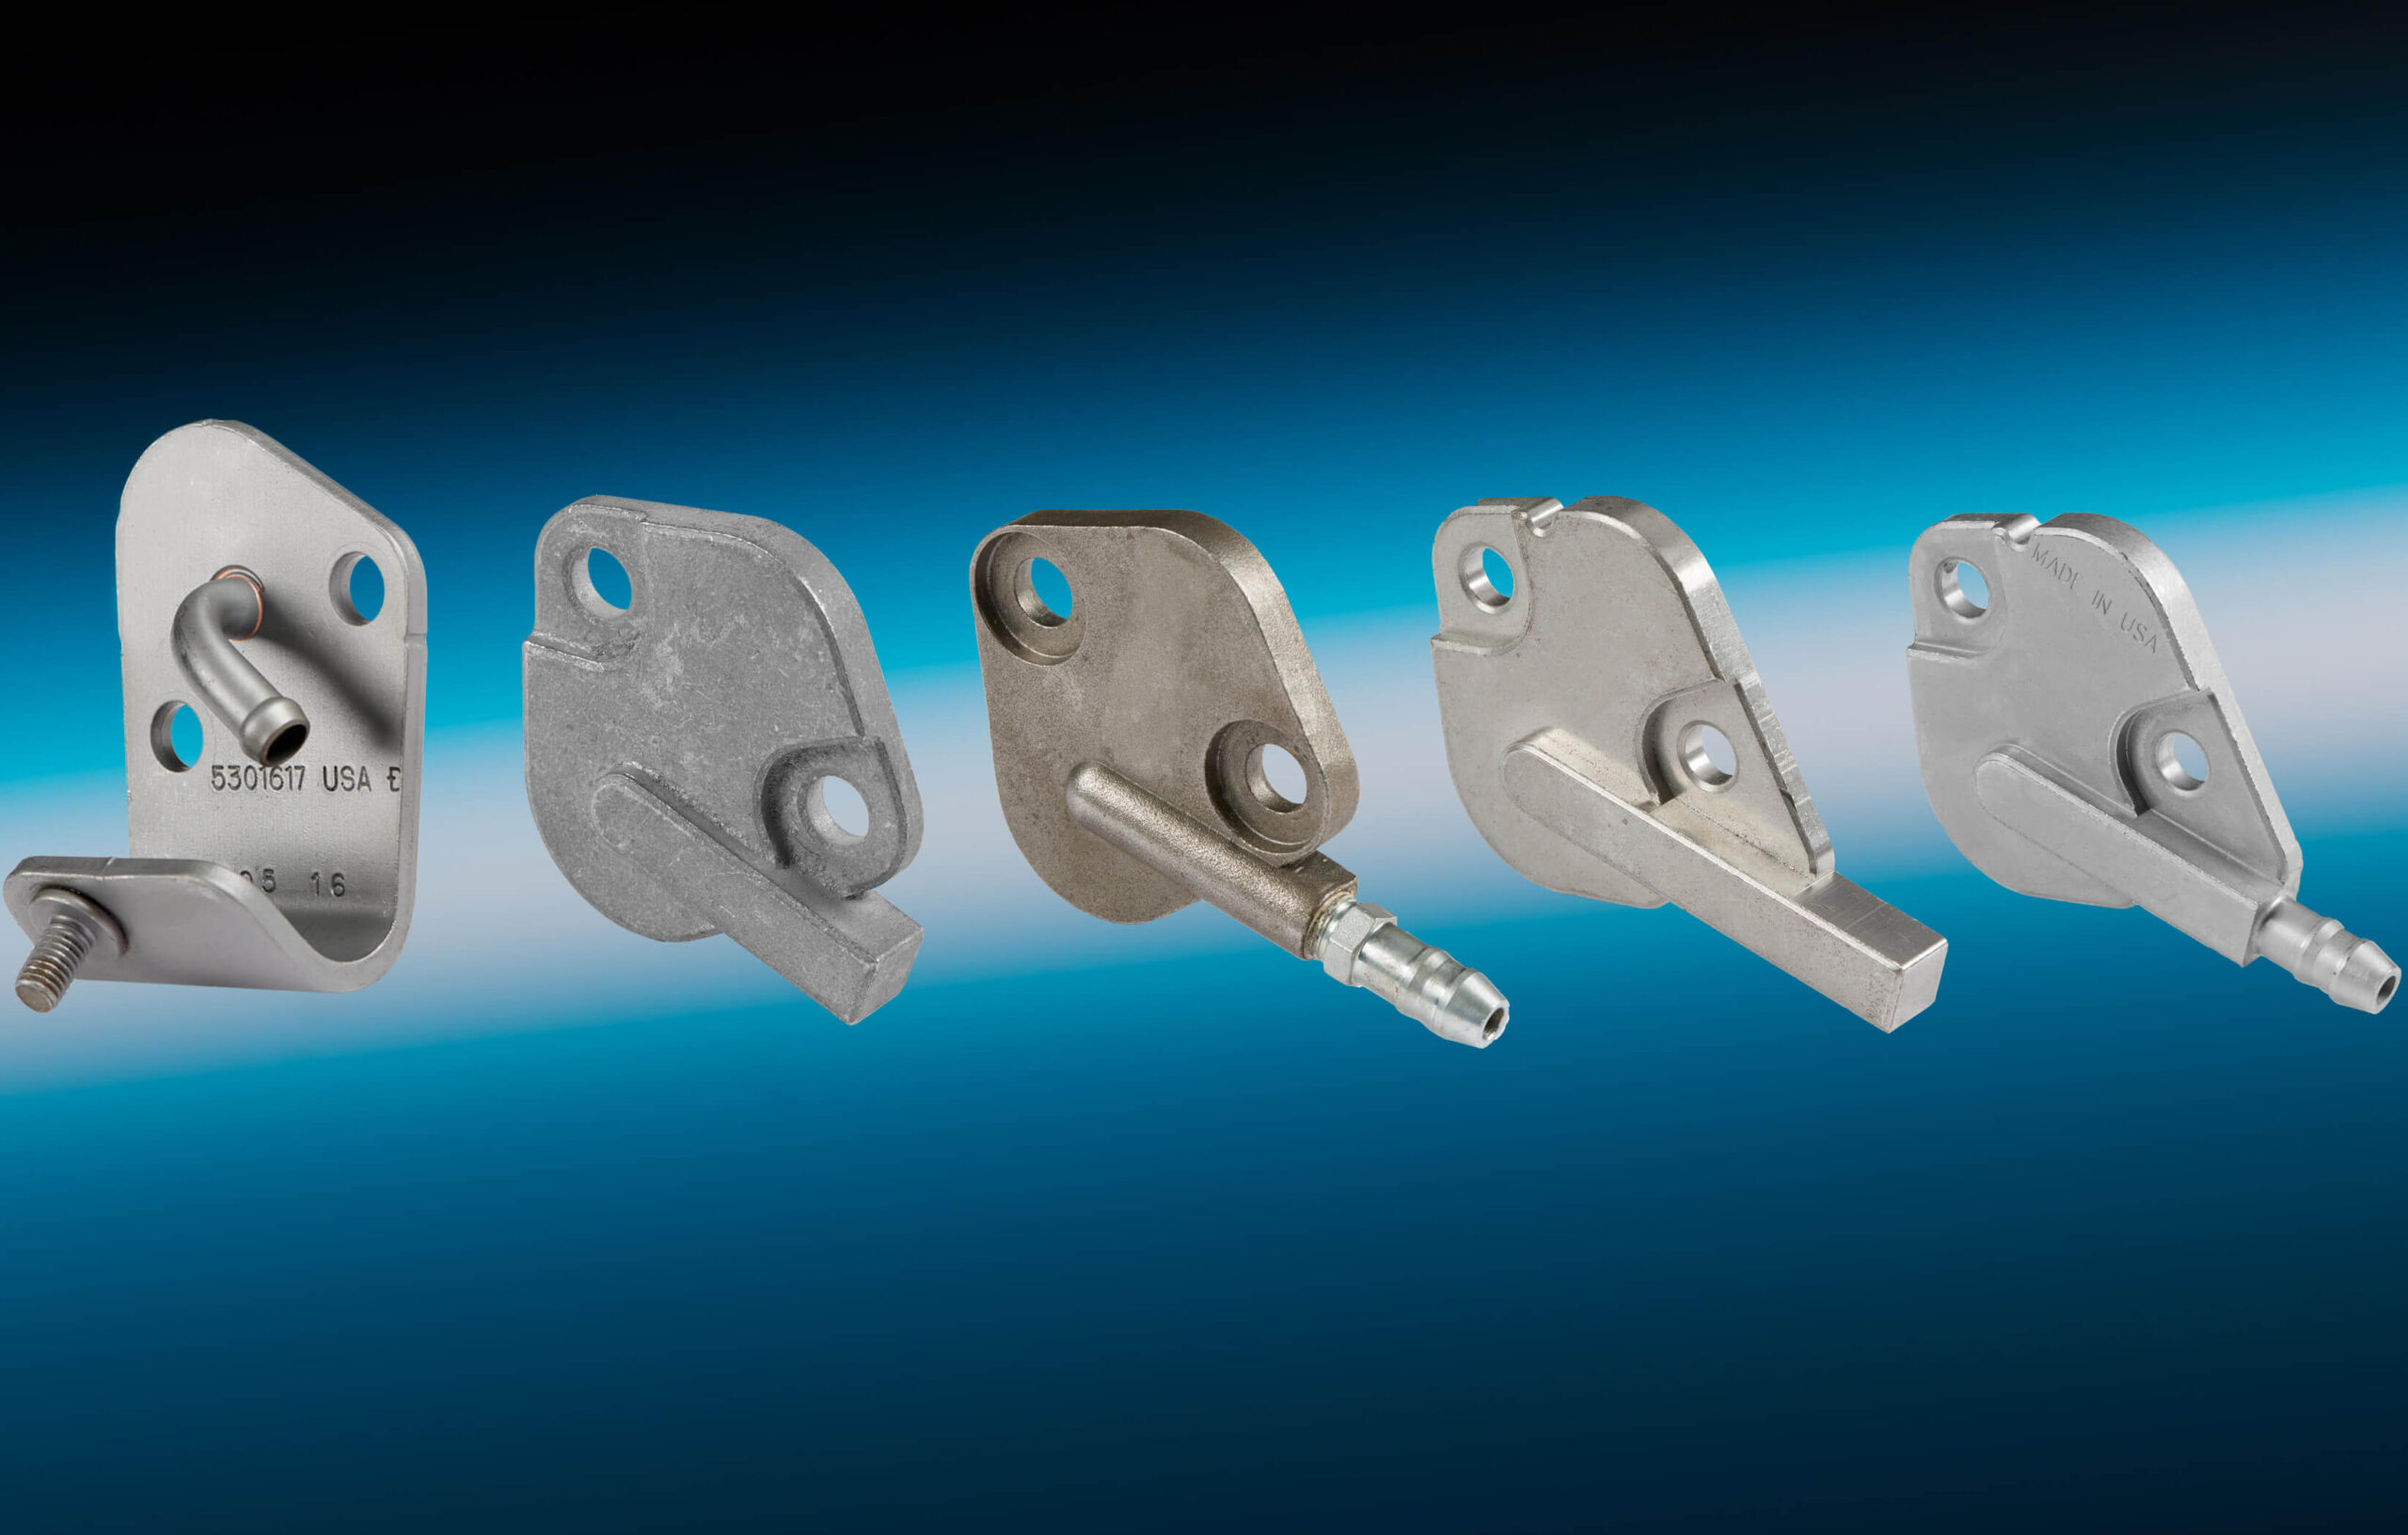 5 innovative products developed by Catalus advanced manufacturing solutions